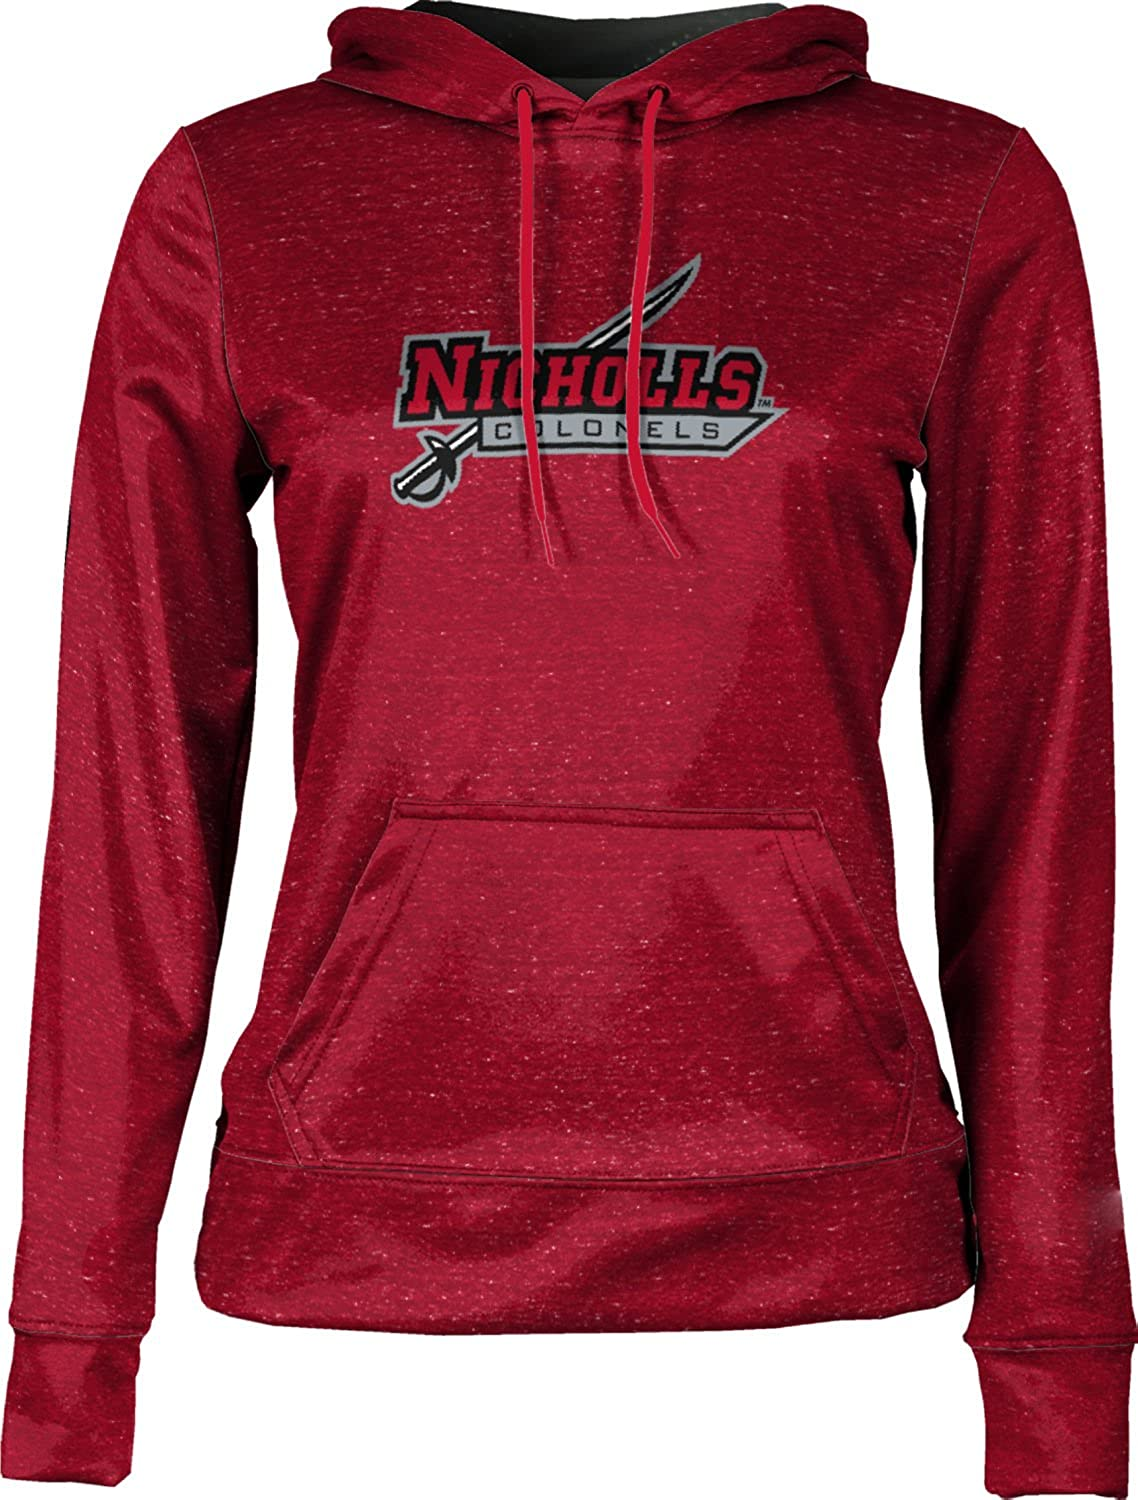 ProSphere Nicholls State University Girls Pullover Hoodie School Spirit Sweatshirt Heather